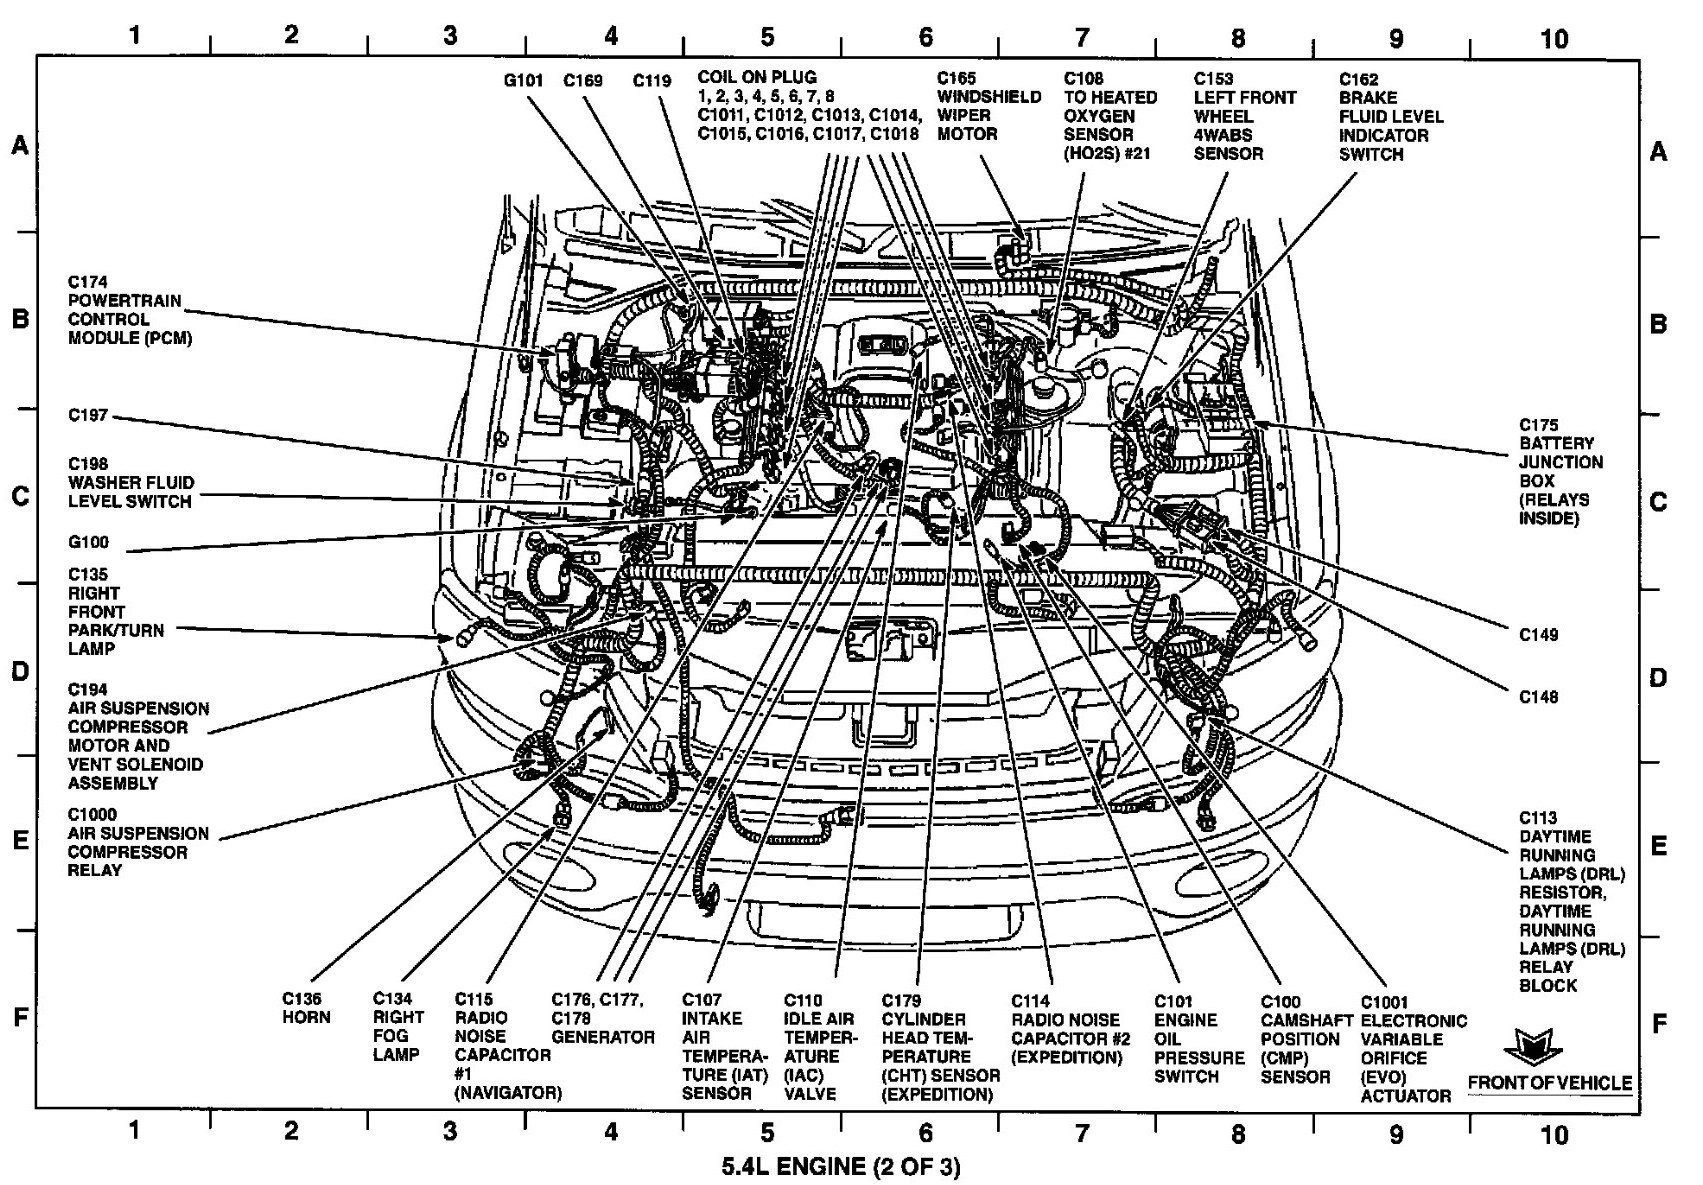 1995 ford mustang engine diagram 2008 bmw 328i engine diagram bmw wiring  diagrams instructions of 1995